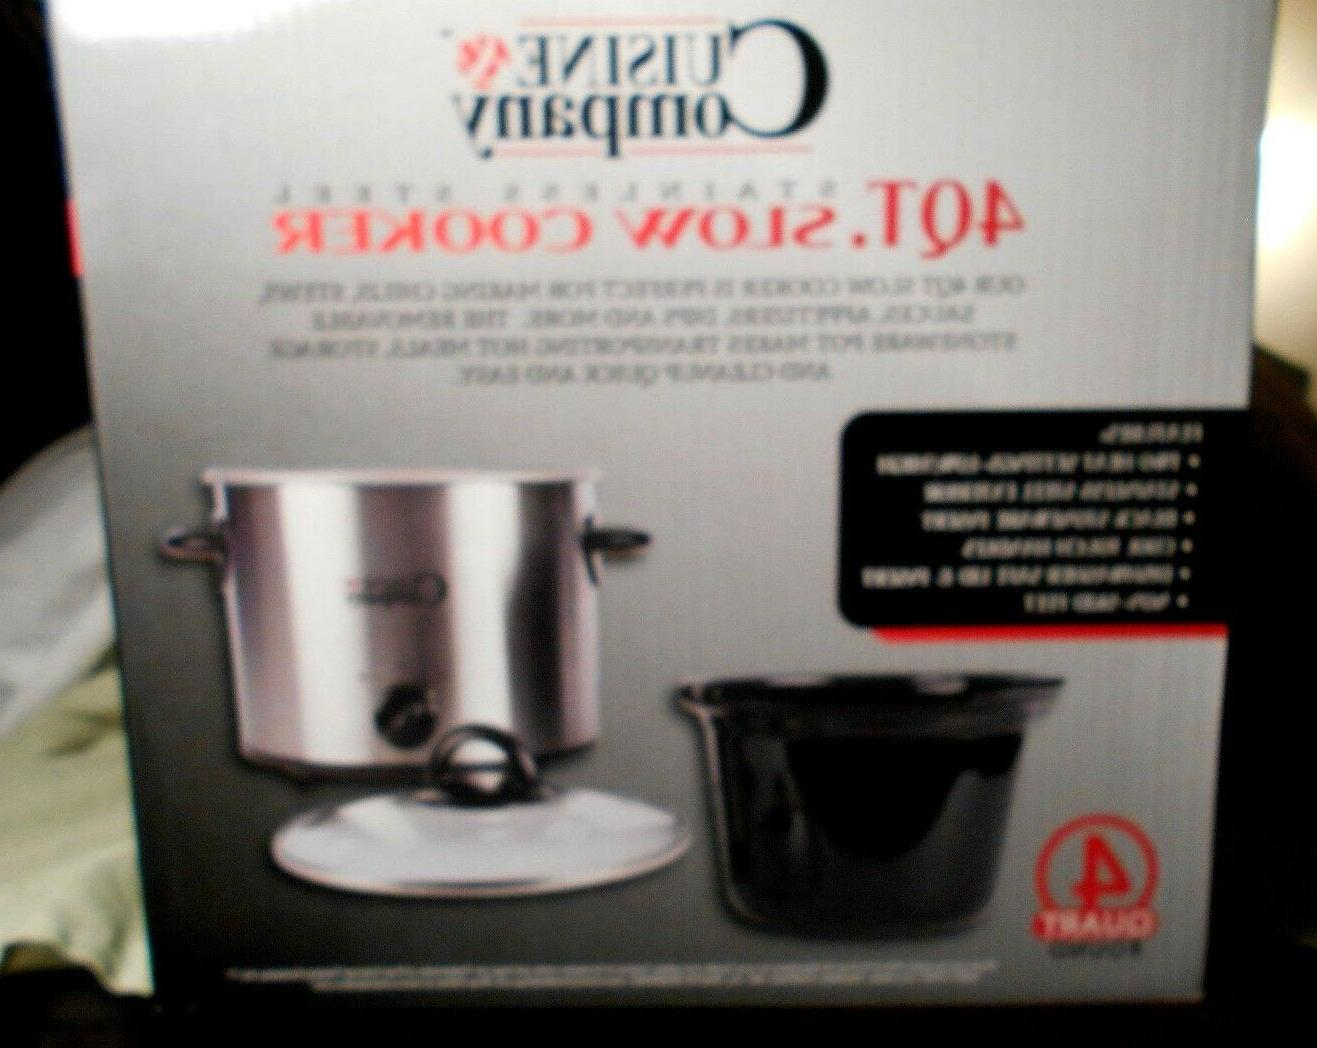 Stainless Steele Crock Pot 4 NEW